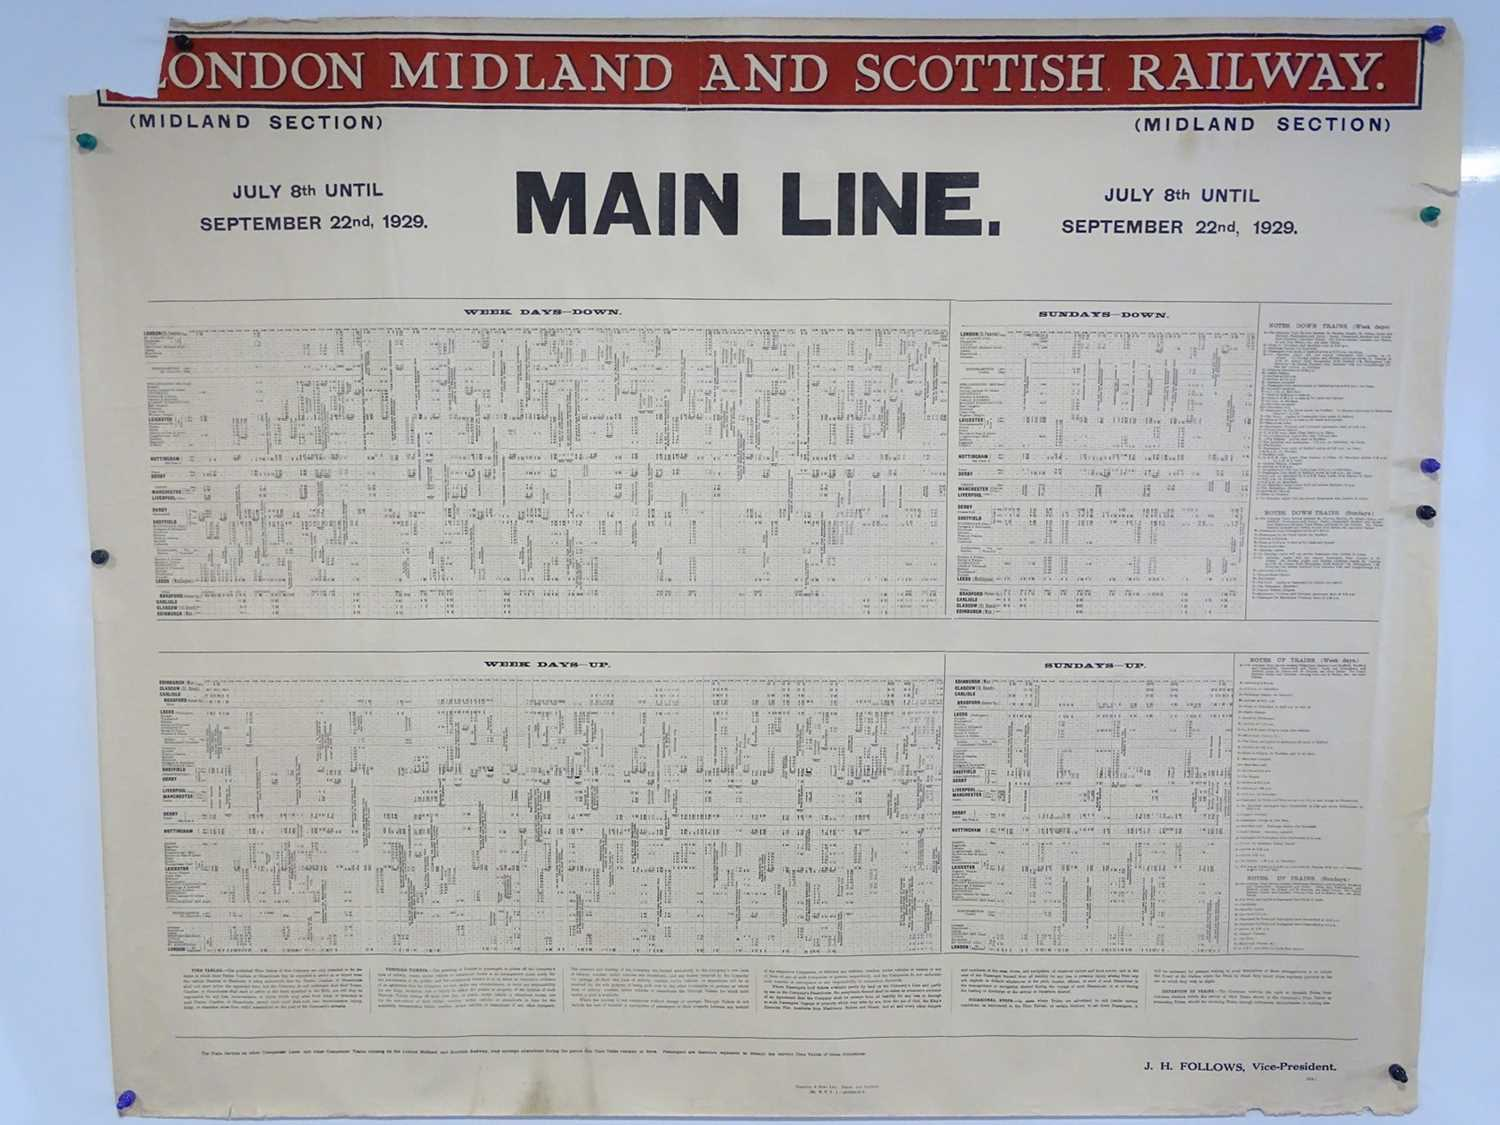 LONDON, MIDLAND and SCOTTISH RAILWAY Mainline (Midland Section) Timetable posters - July 8th - - Image 6 of 15